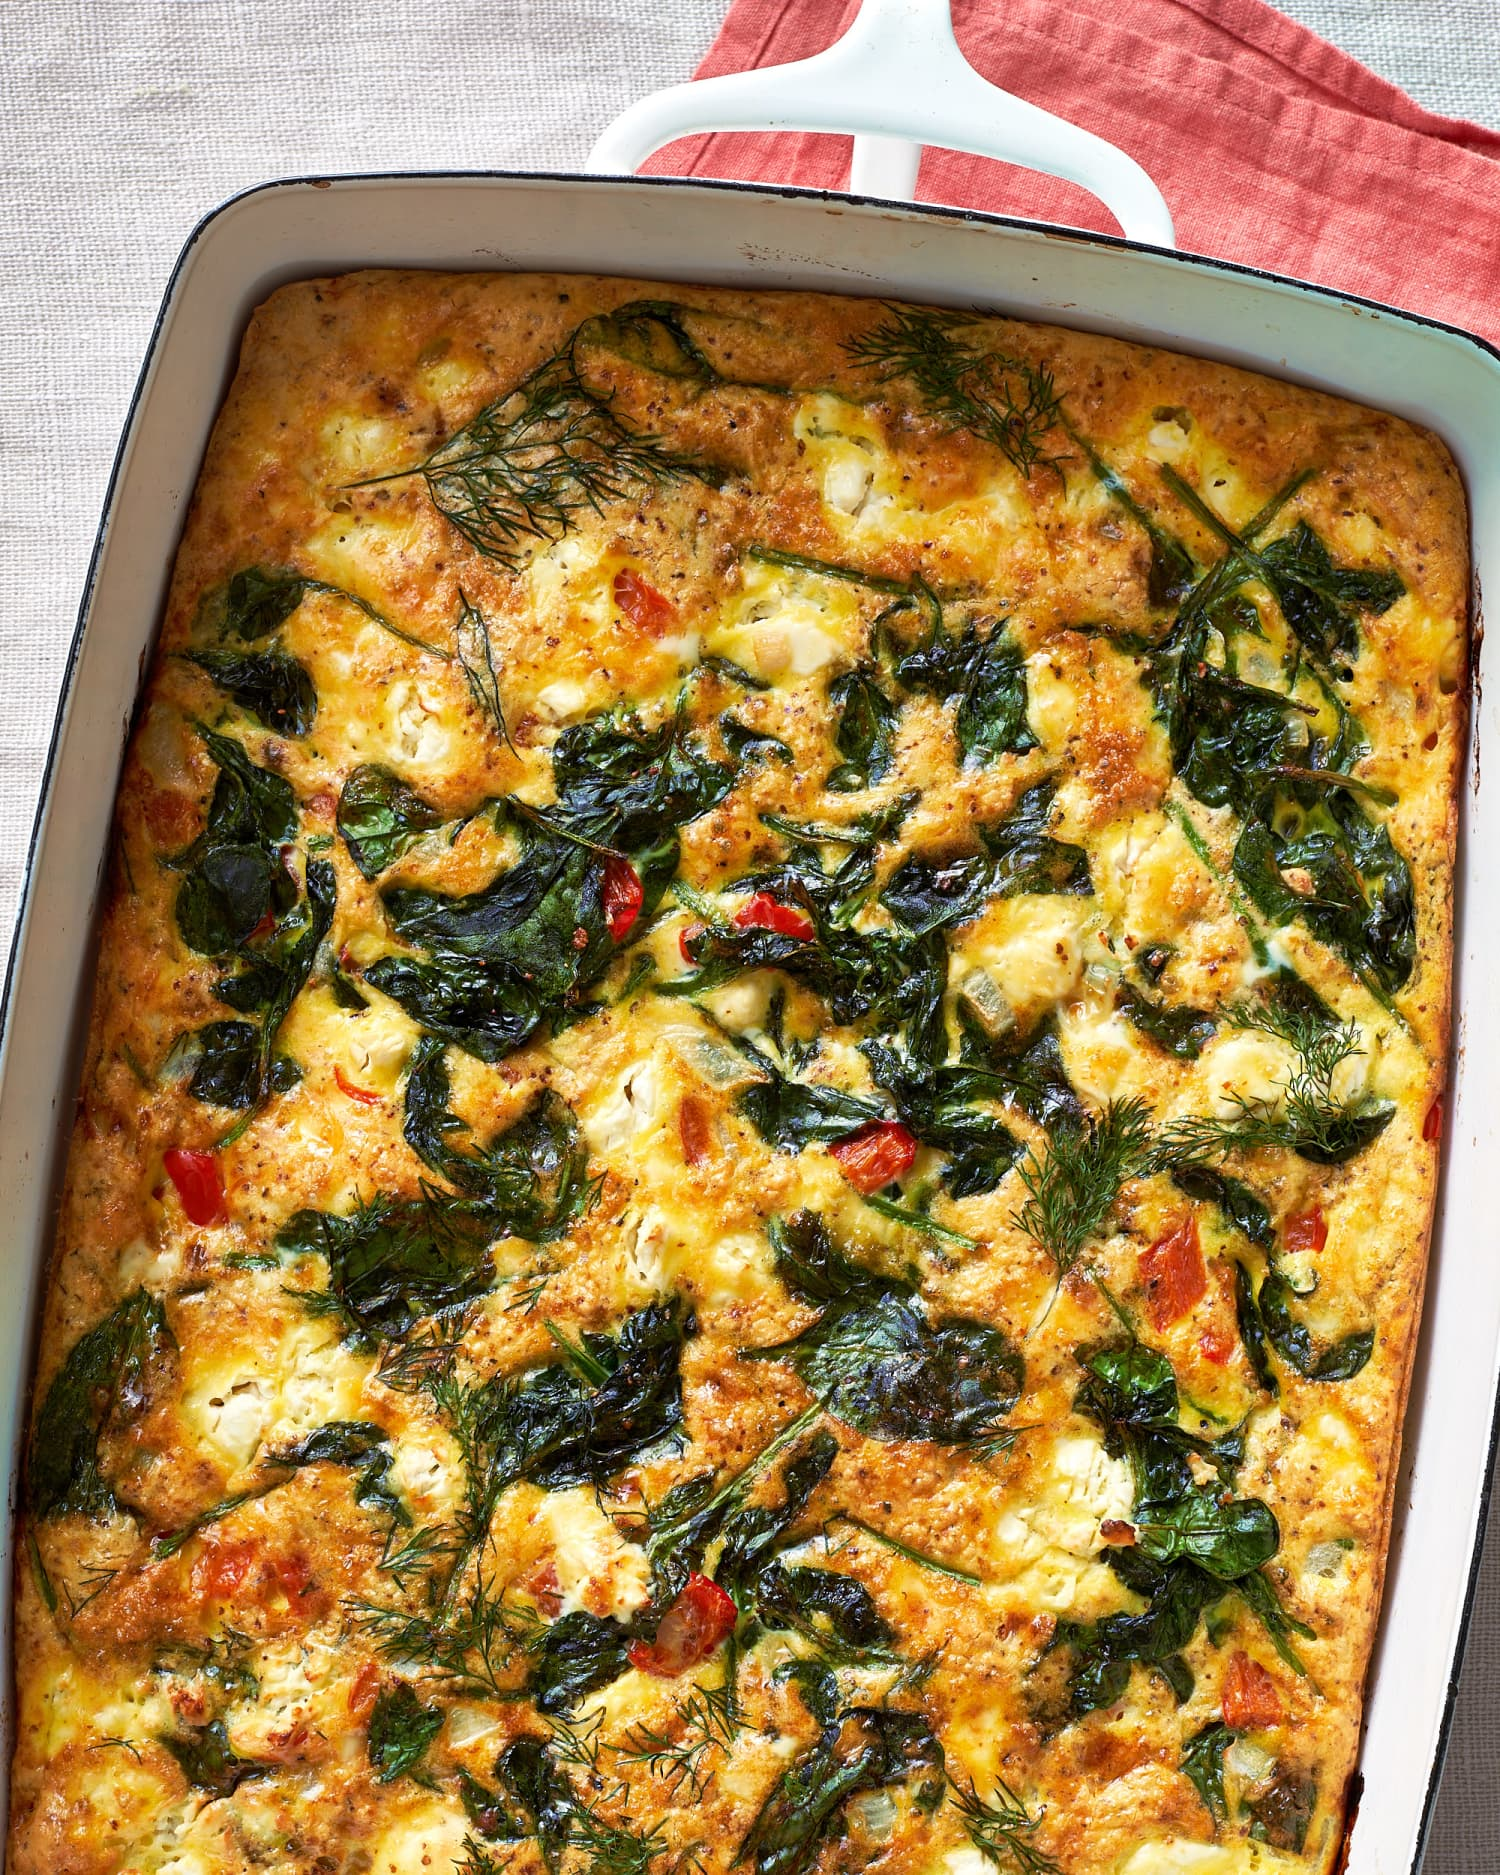 This Baked Greek Omelet Is Like Spanakopita In a Casserole